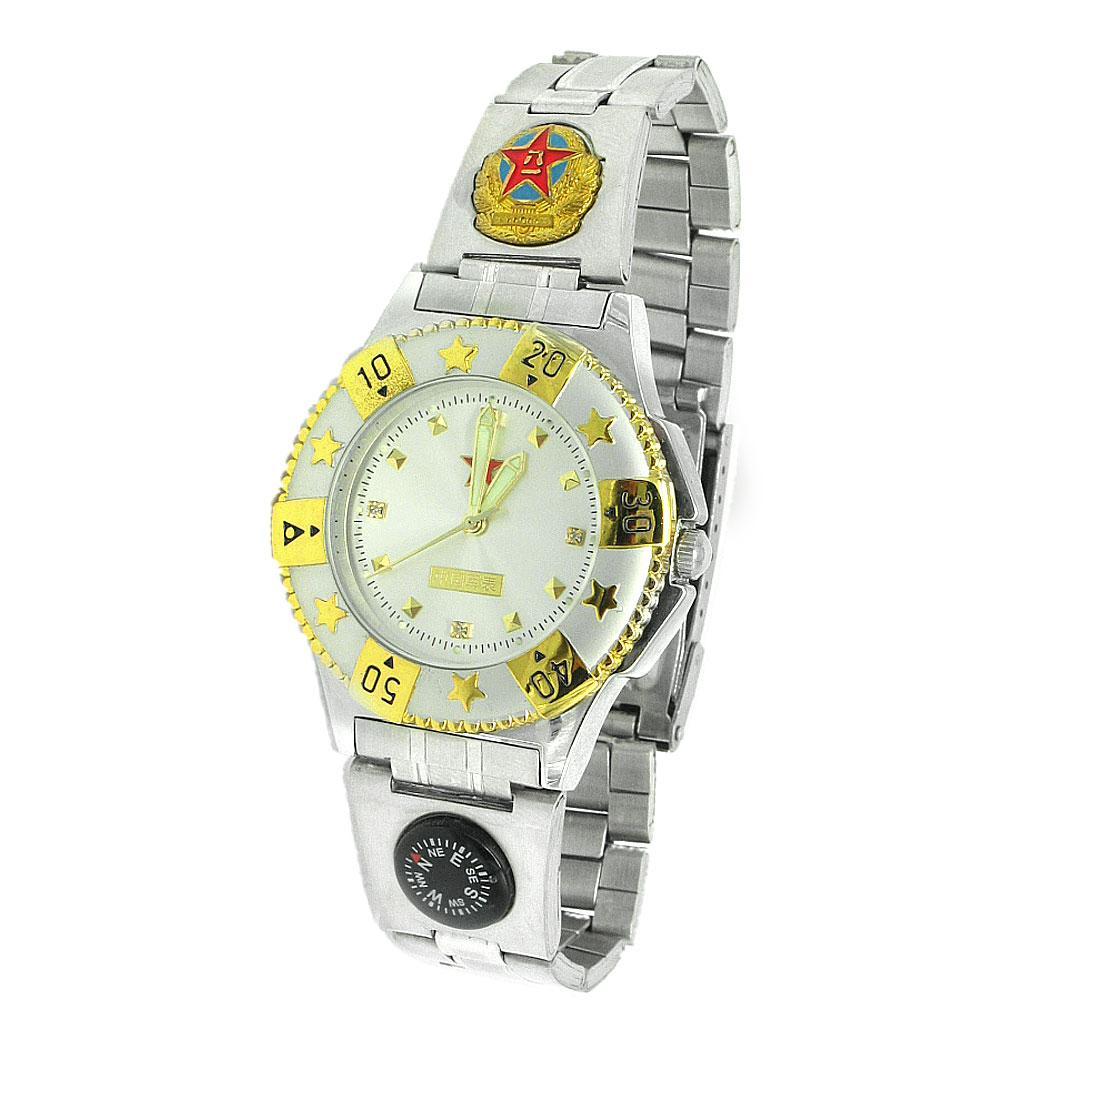 Fashion Steel Band Men's Wrist Watch with Night Vision Hands